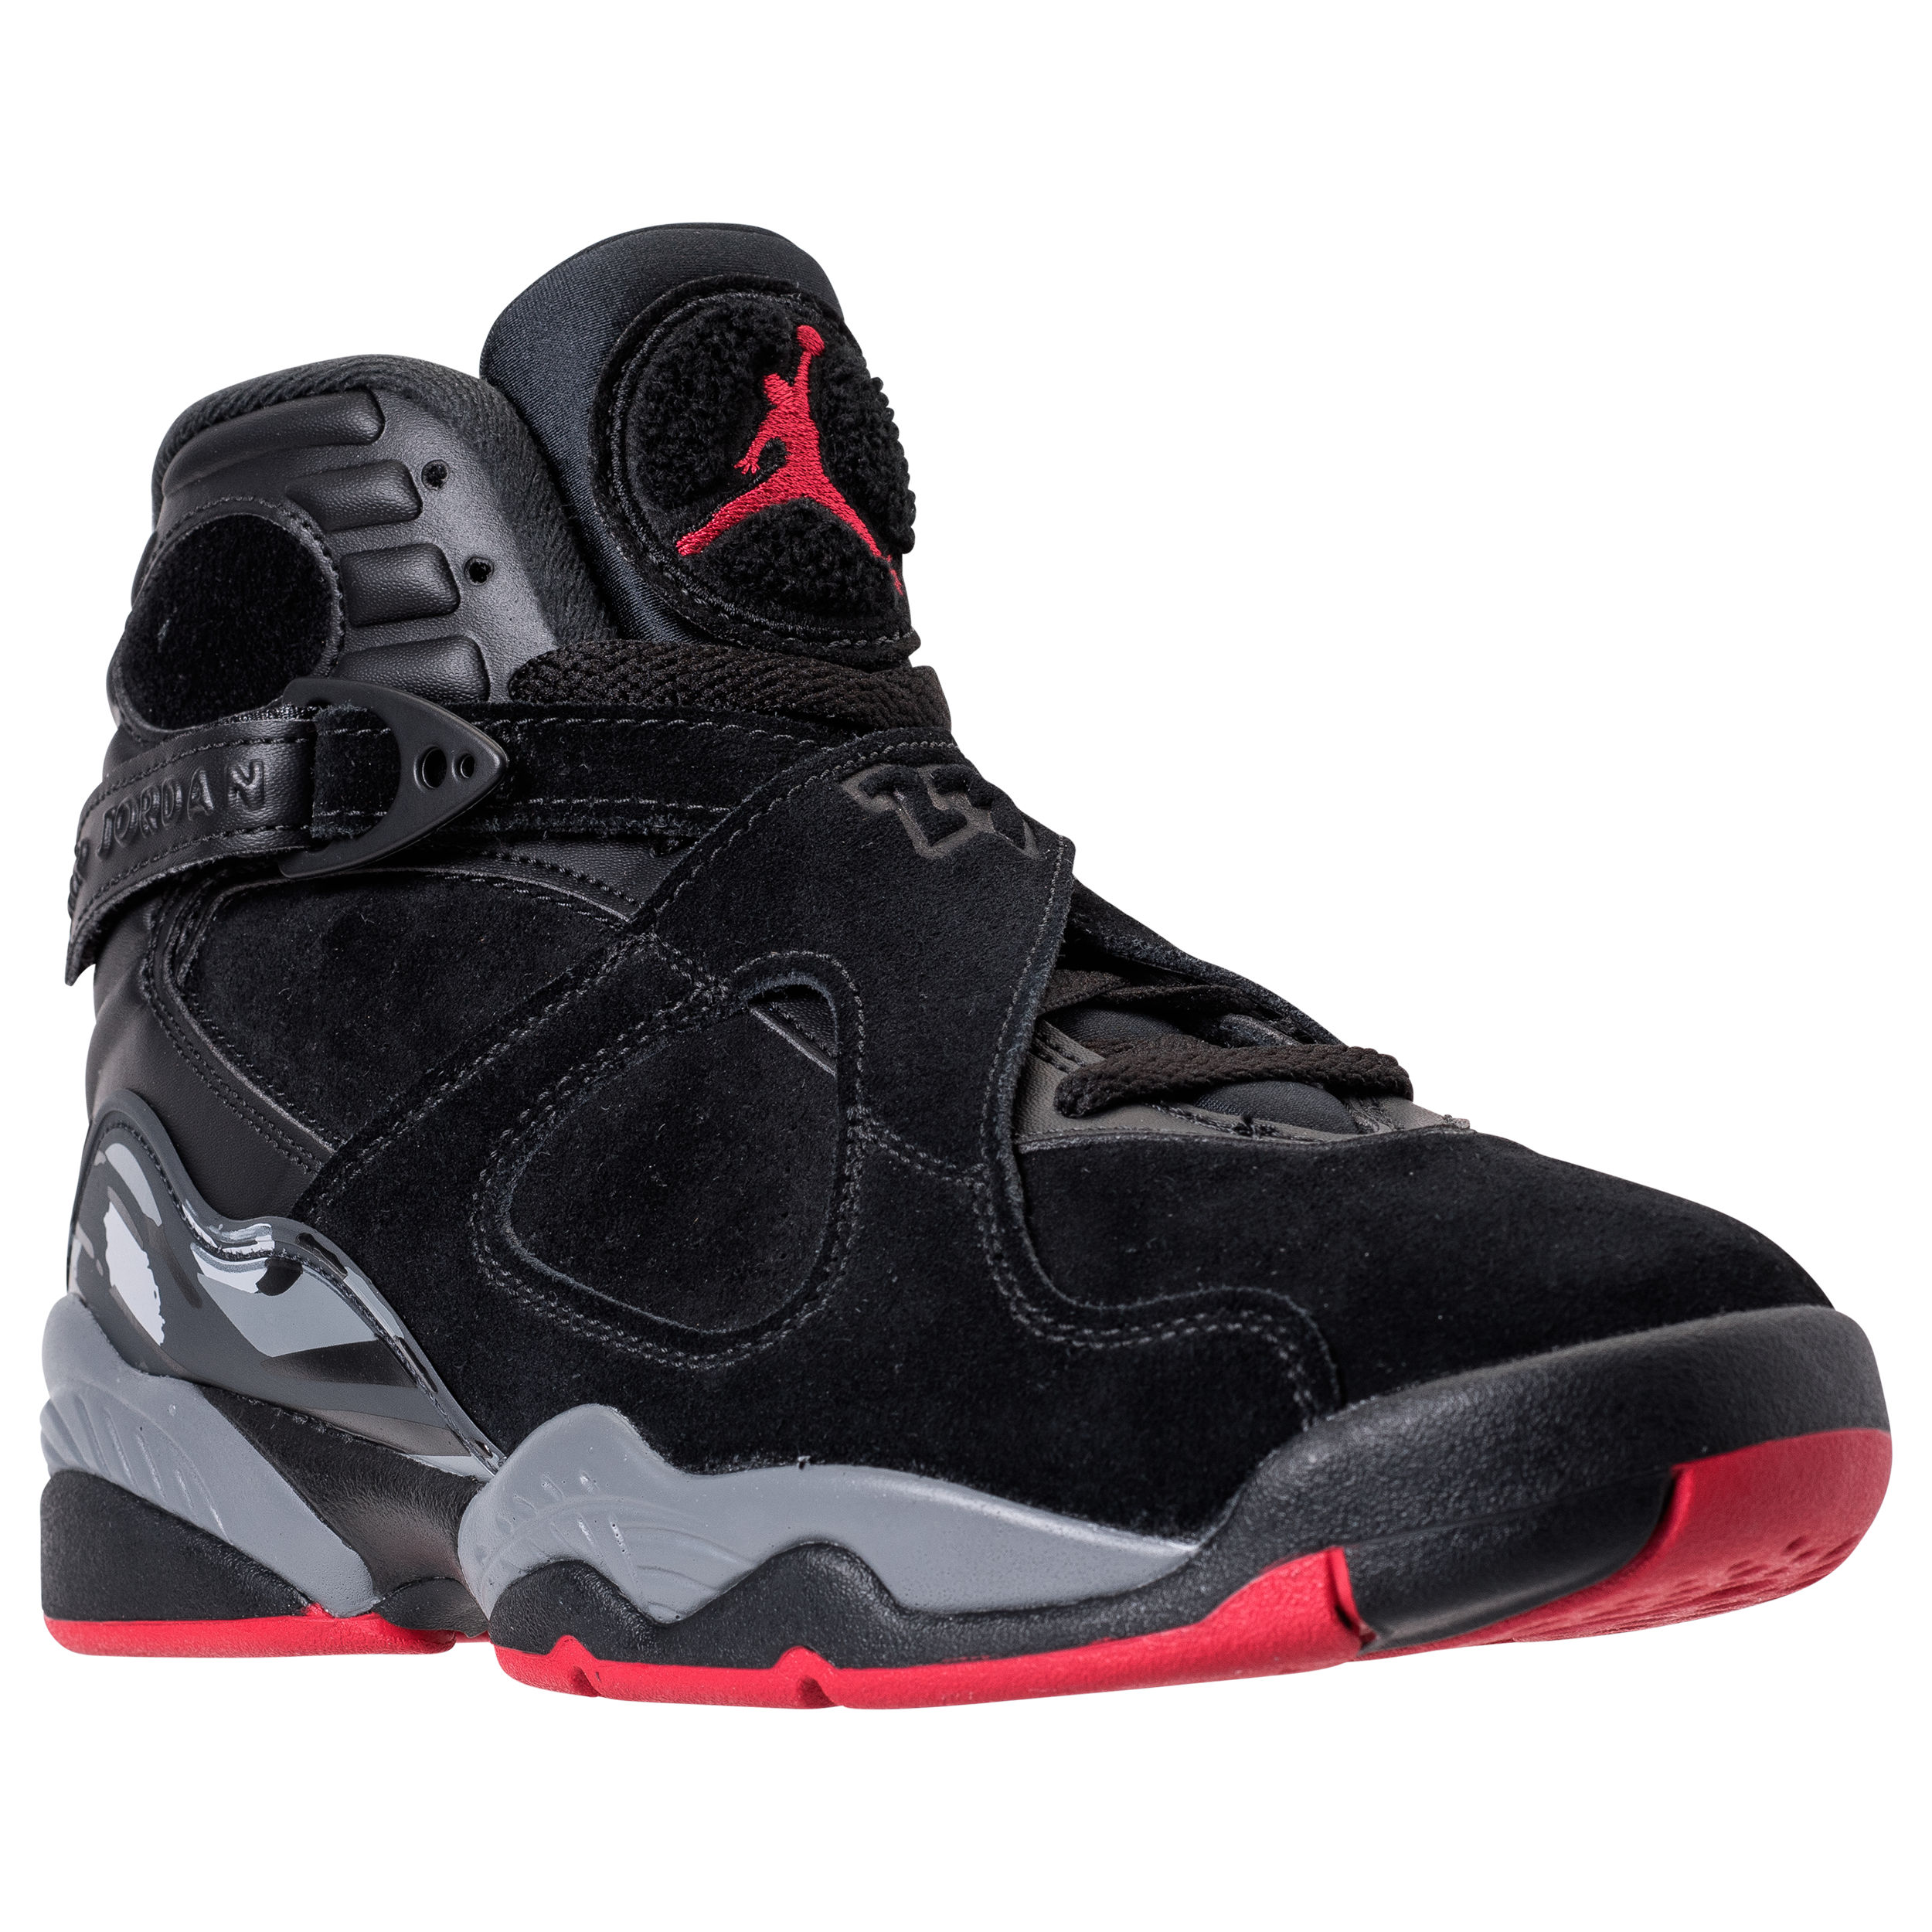 finest selection 8001f aa7c8 The Air Jordan 8 Retro in Black/Gym Red is Set to Debut ...